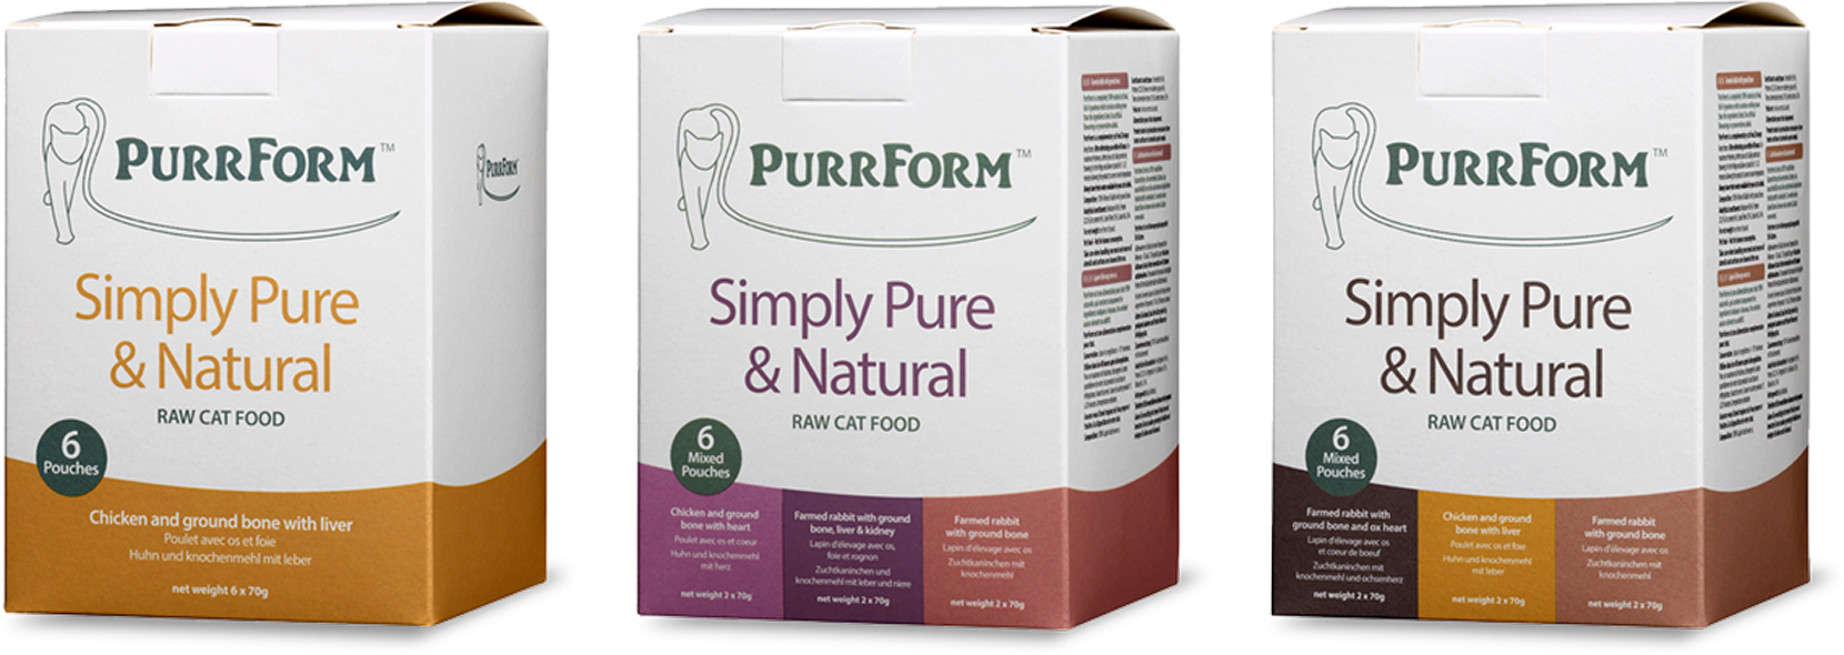 Purrform packaging photography